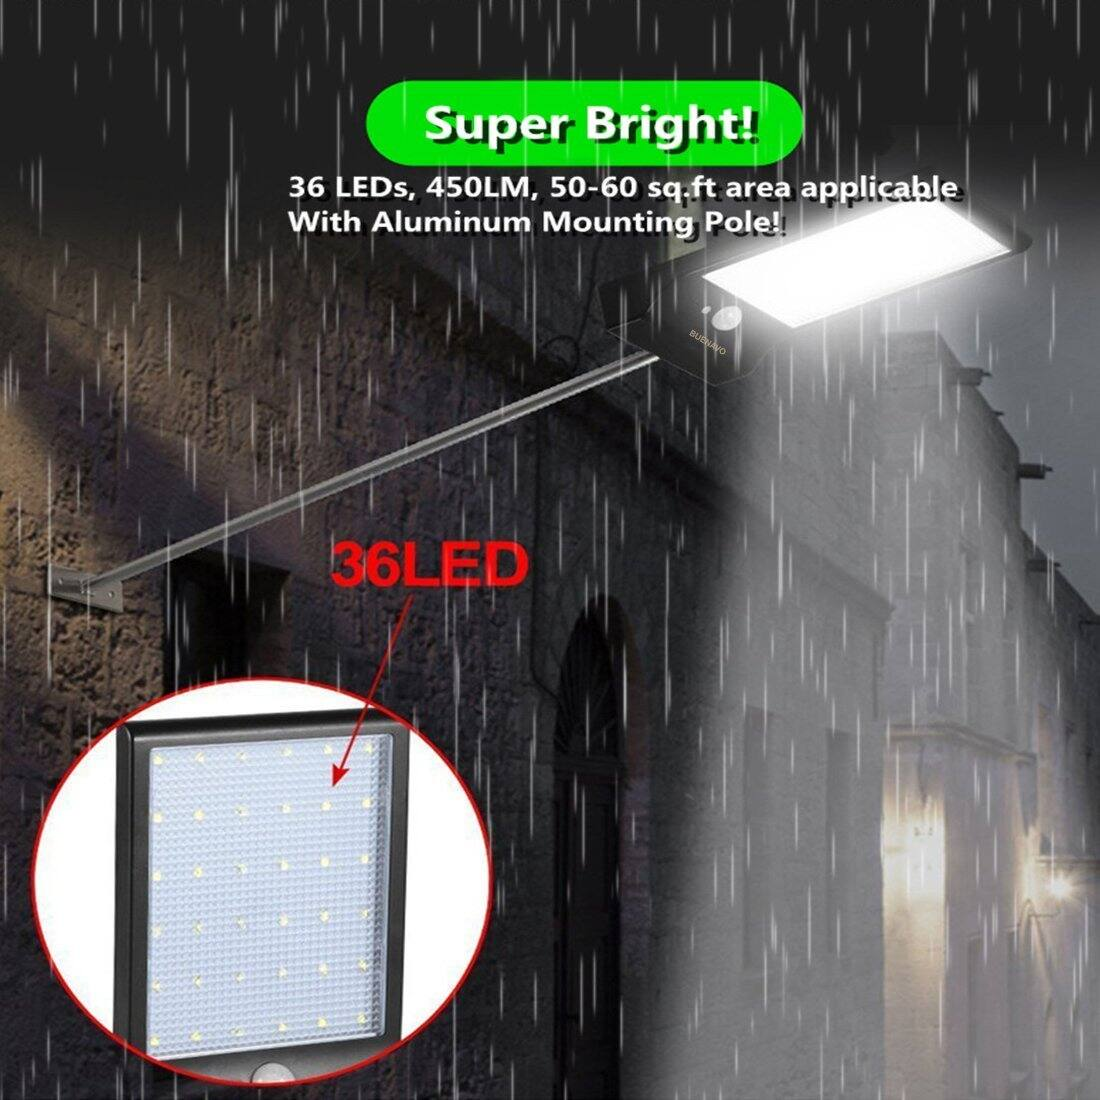 BuenaVo Outdoor Solar Light 36 LEDs 450LM Motion Sensor Flood Light With Aluminum Mounting Pole for $33.99 w/ free shipping on Amazon